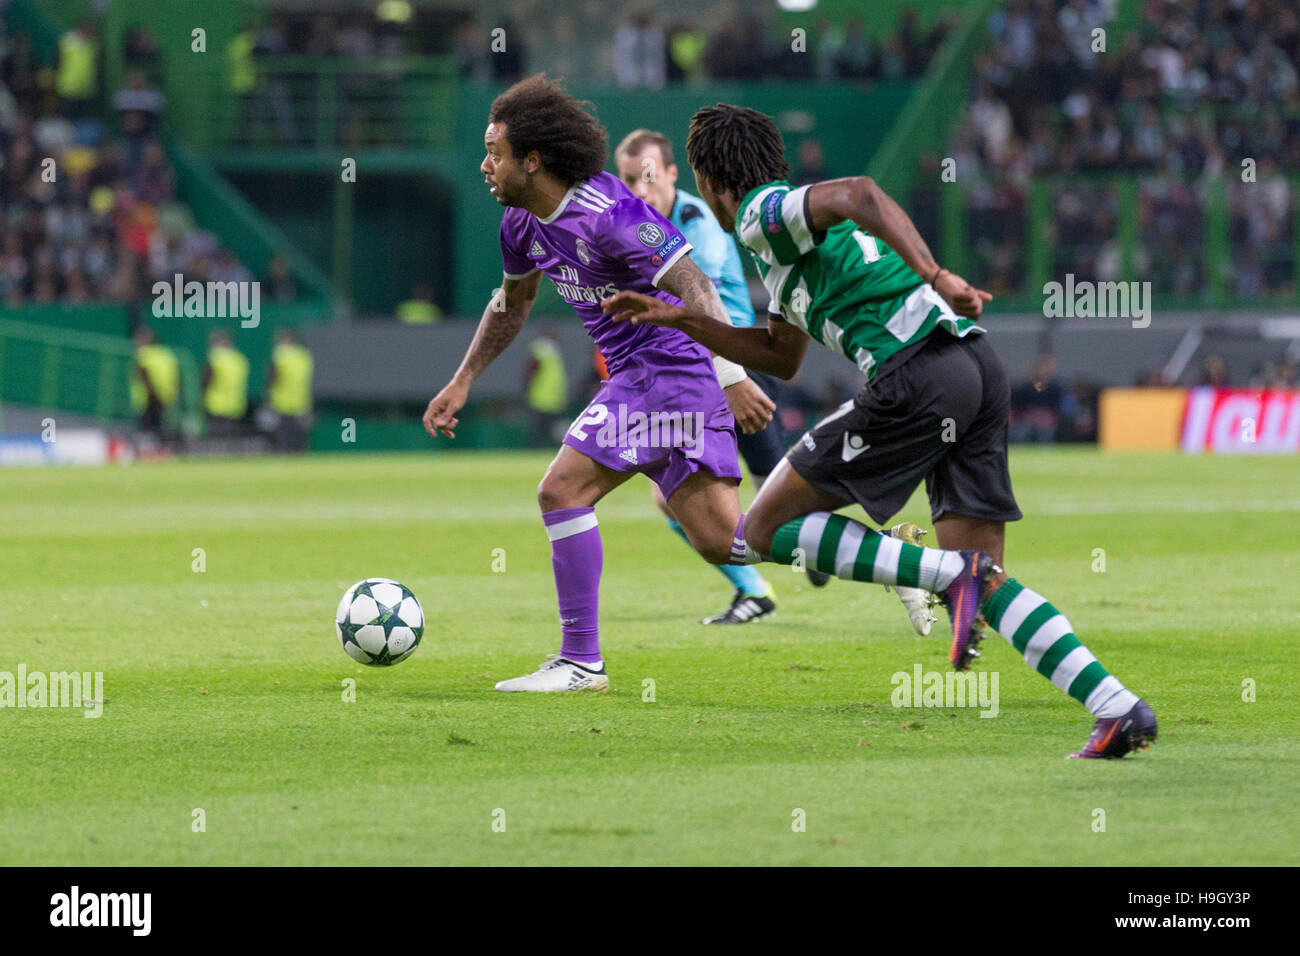 Lisbon, Portugal. 22nd Nov, 2016. Real Madrid's defender from Brazil Marcelo (12) during the game of the UEFA - Stock Image